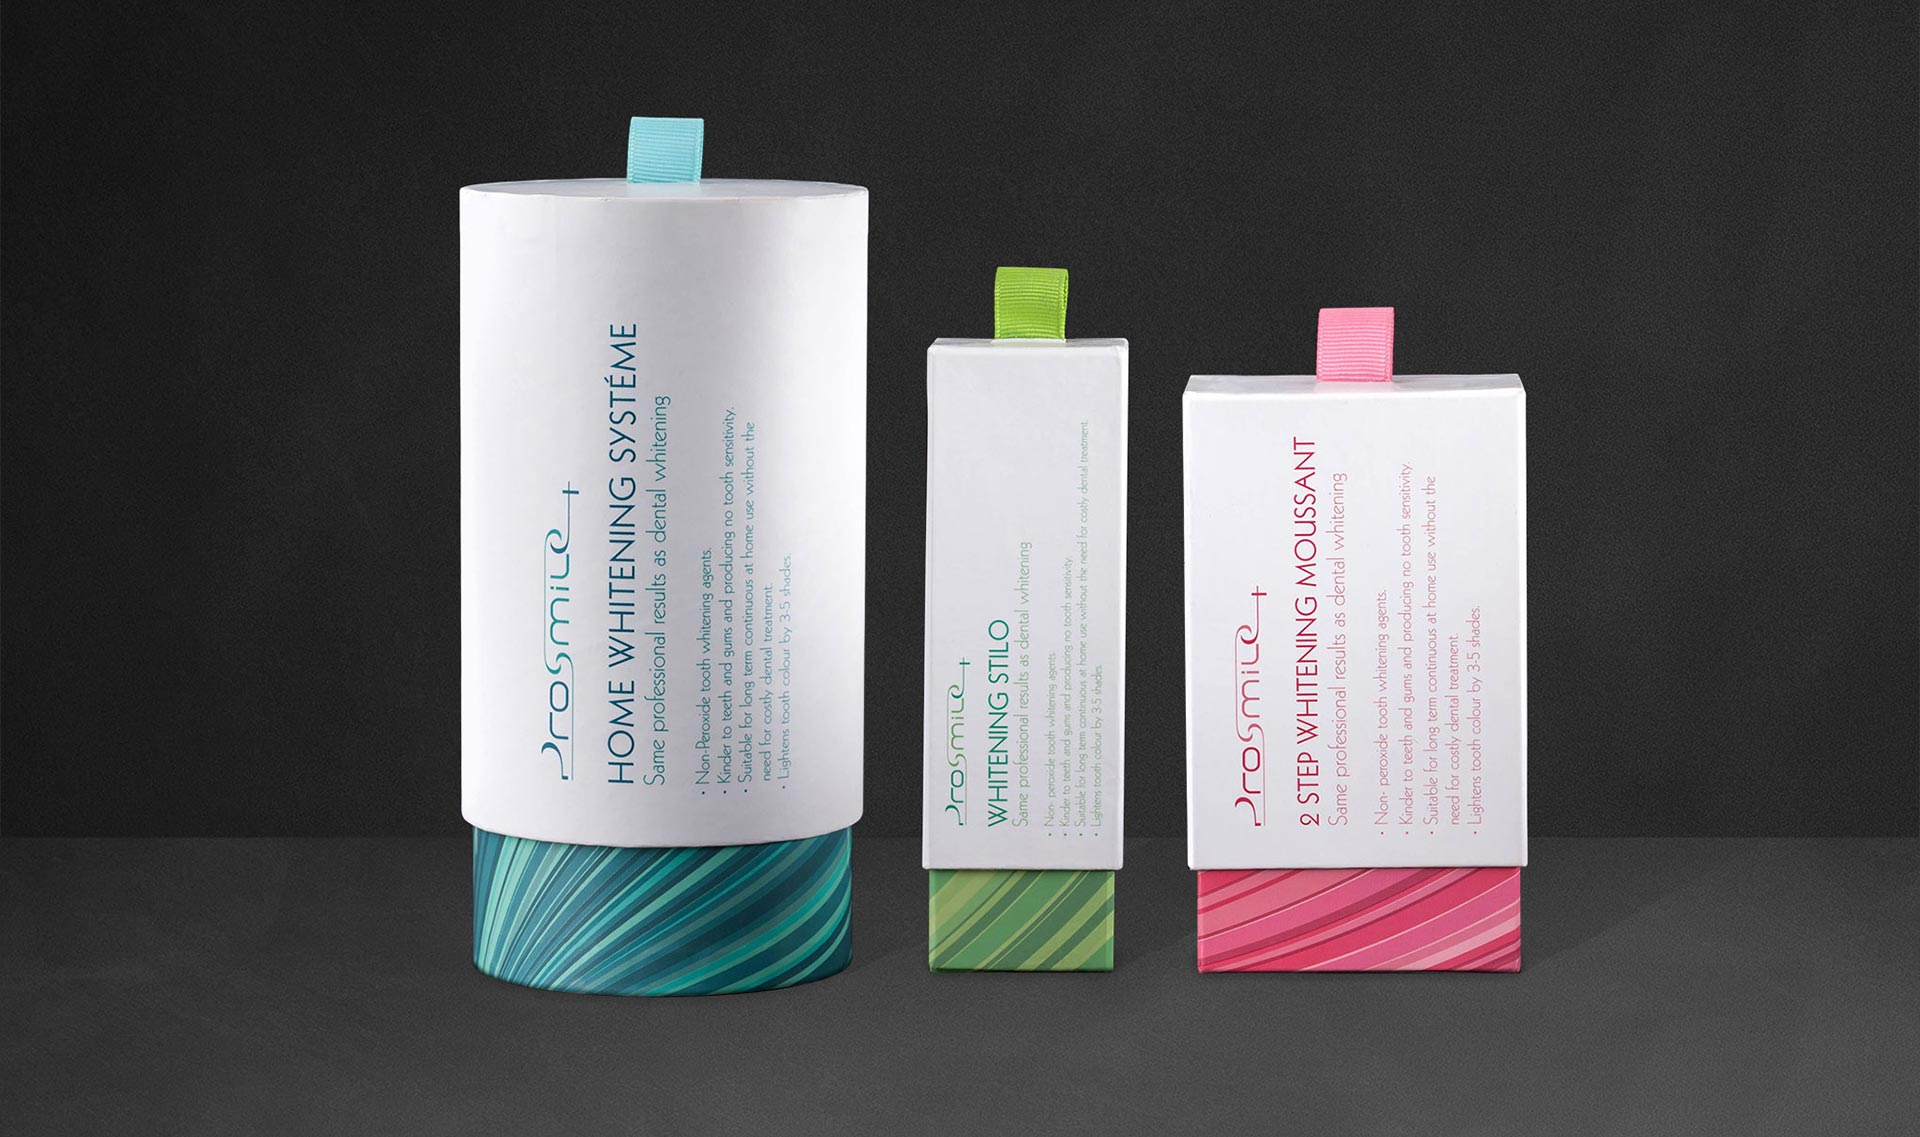 Healthcare Packaging design for Prosmile+ Teeth whitening products. x 3 product line up.